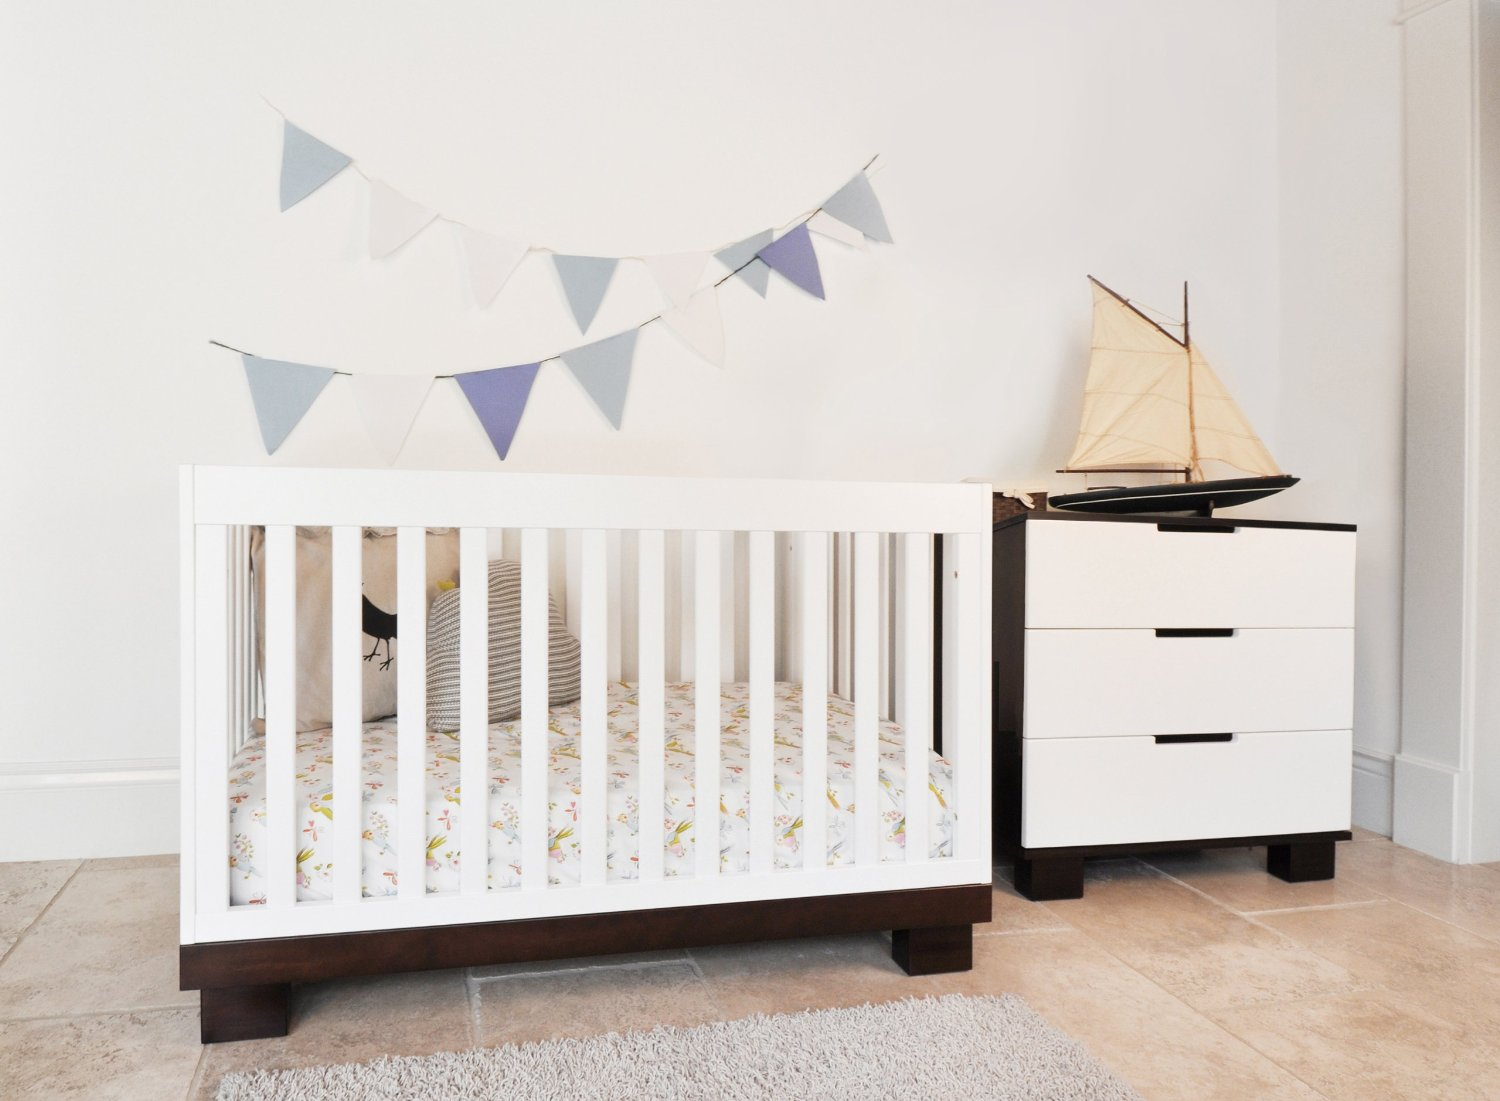 Babyletto Modo 3 In 1 Crib With Toddler Rail On Cream Floor For Nursery Furniture Ideas